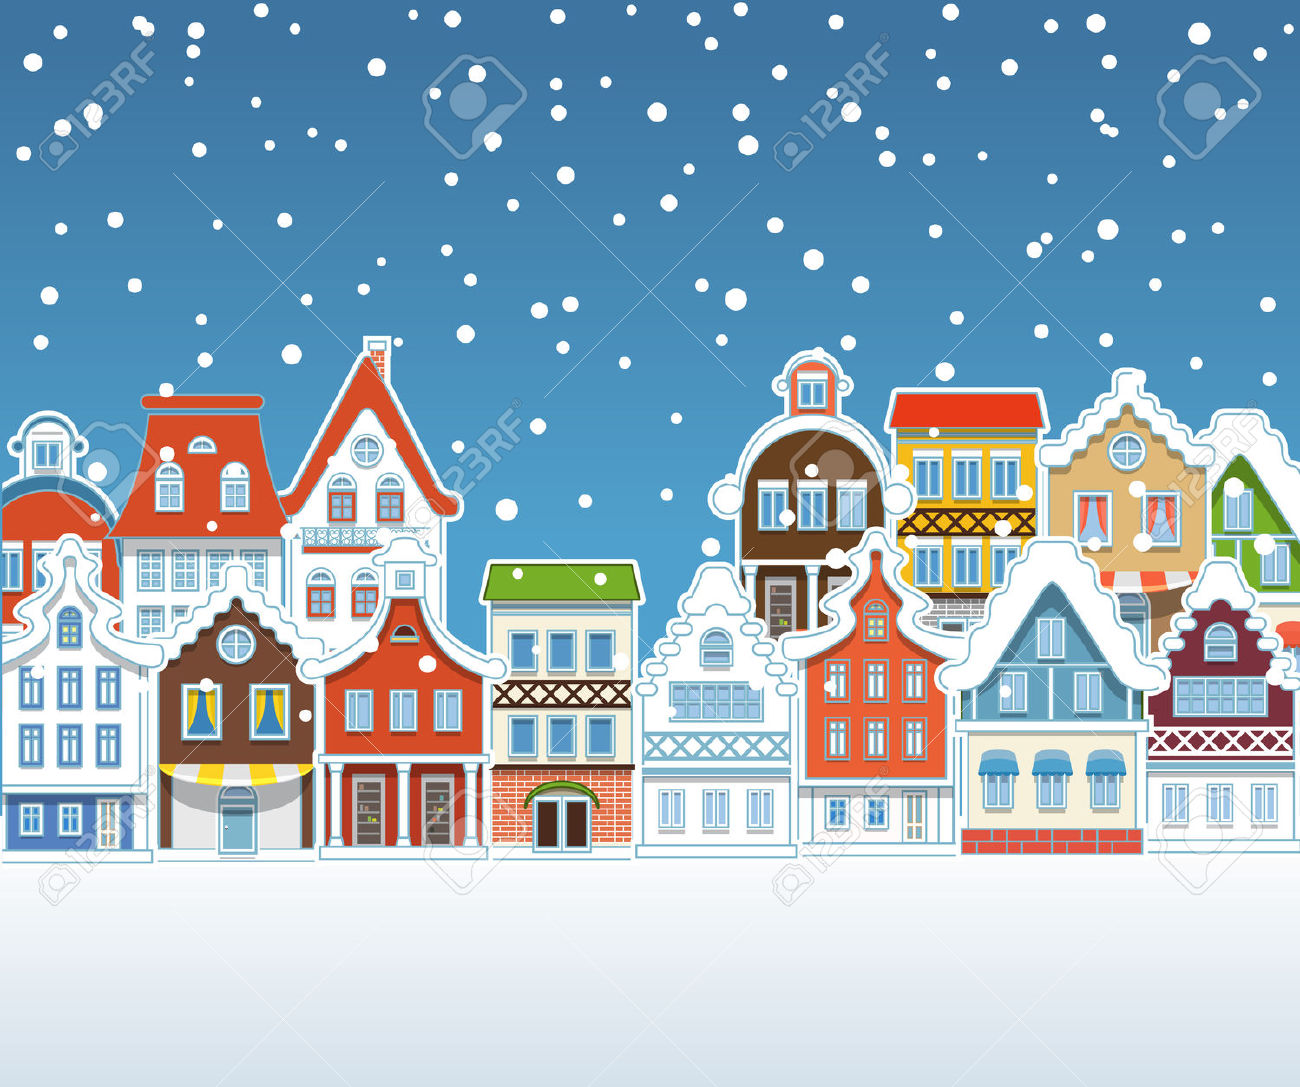 Free christmas village cliparts. Winter clipart town